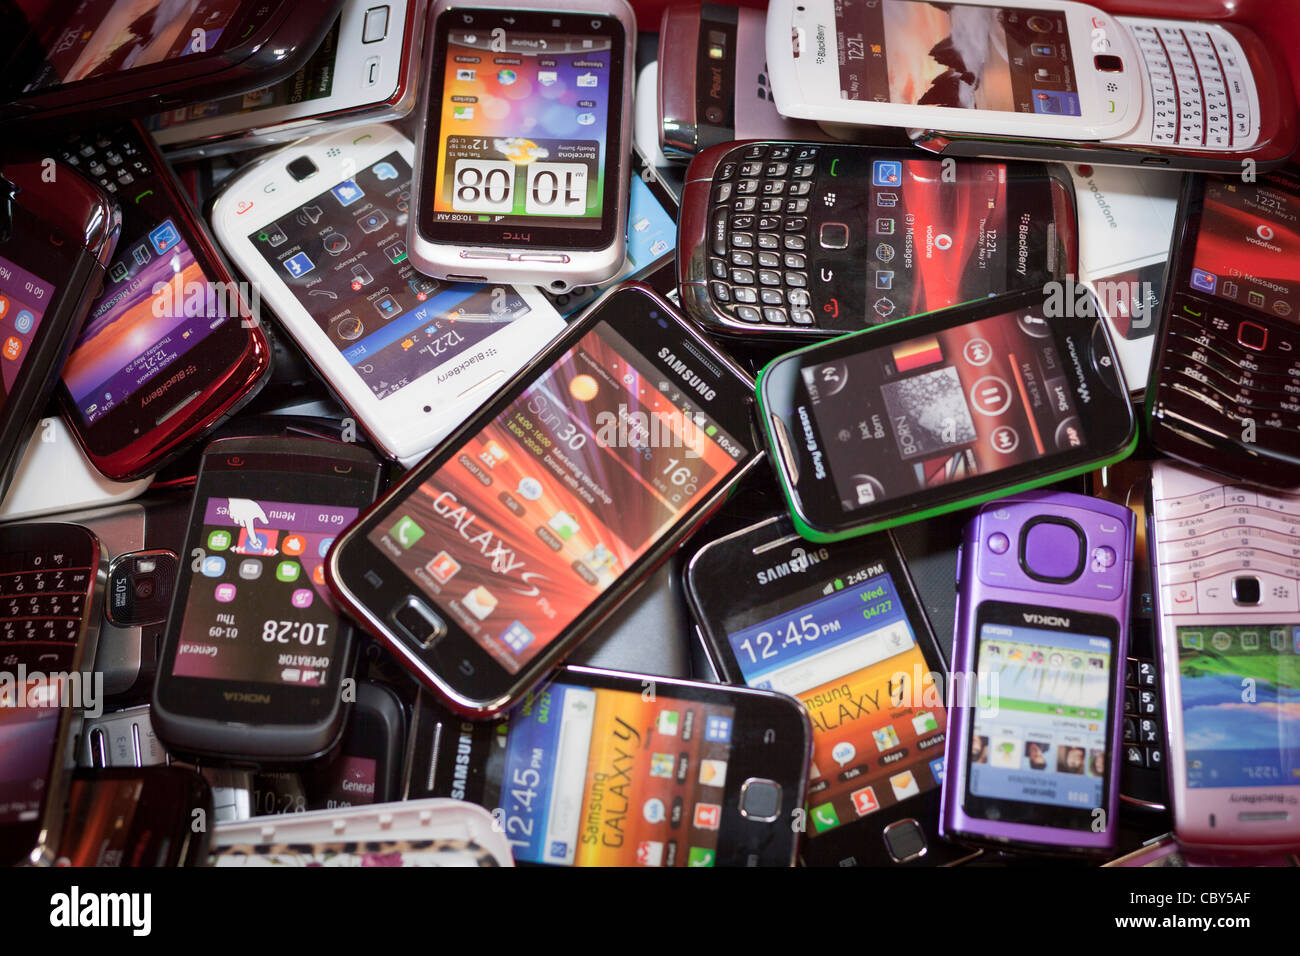 Pile Of Cell Phones : Pile of mobile phones stock photo alamy